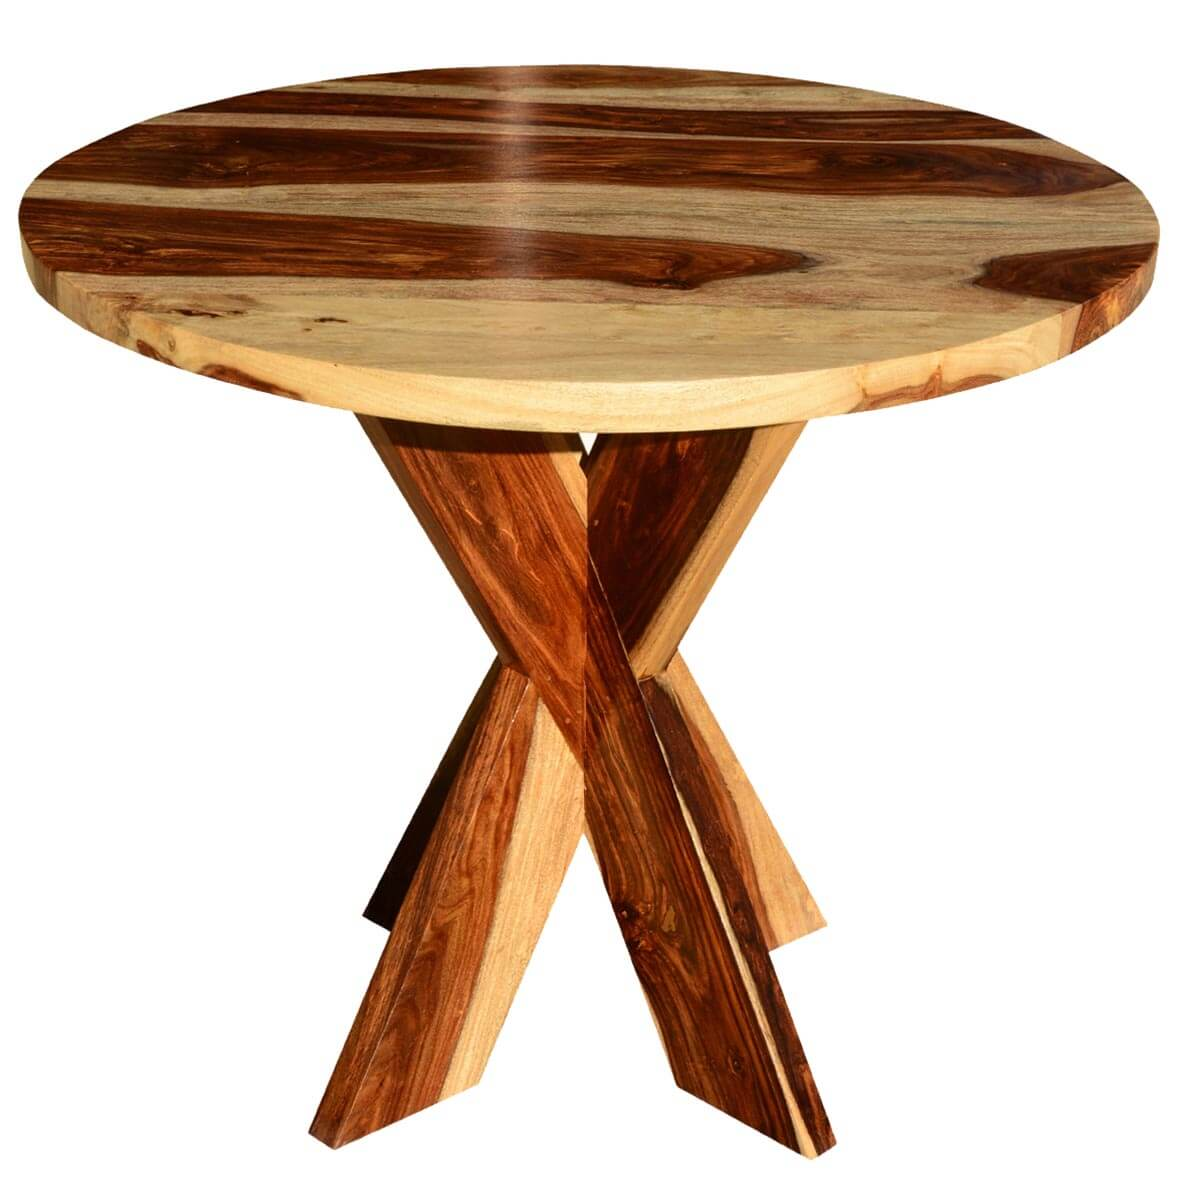 Wood Round Dining Table: Dallas Solid Wood X Pedestal Round Dining Table